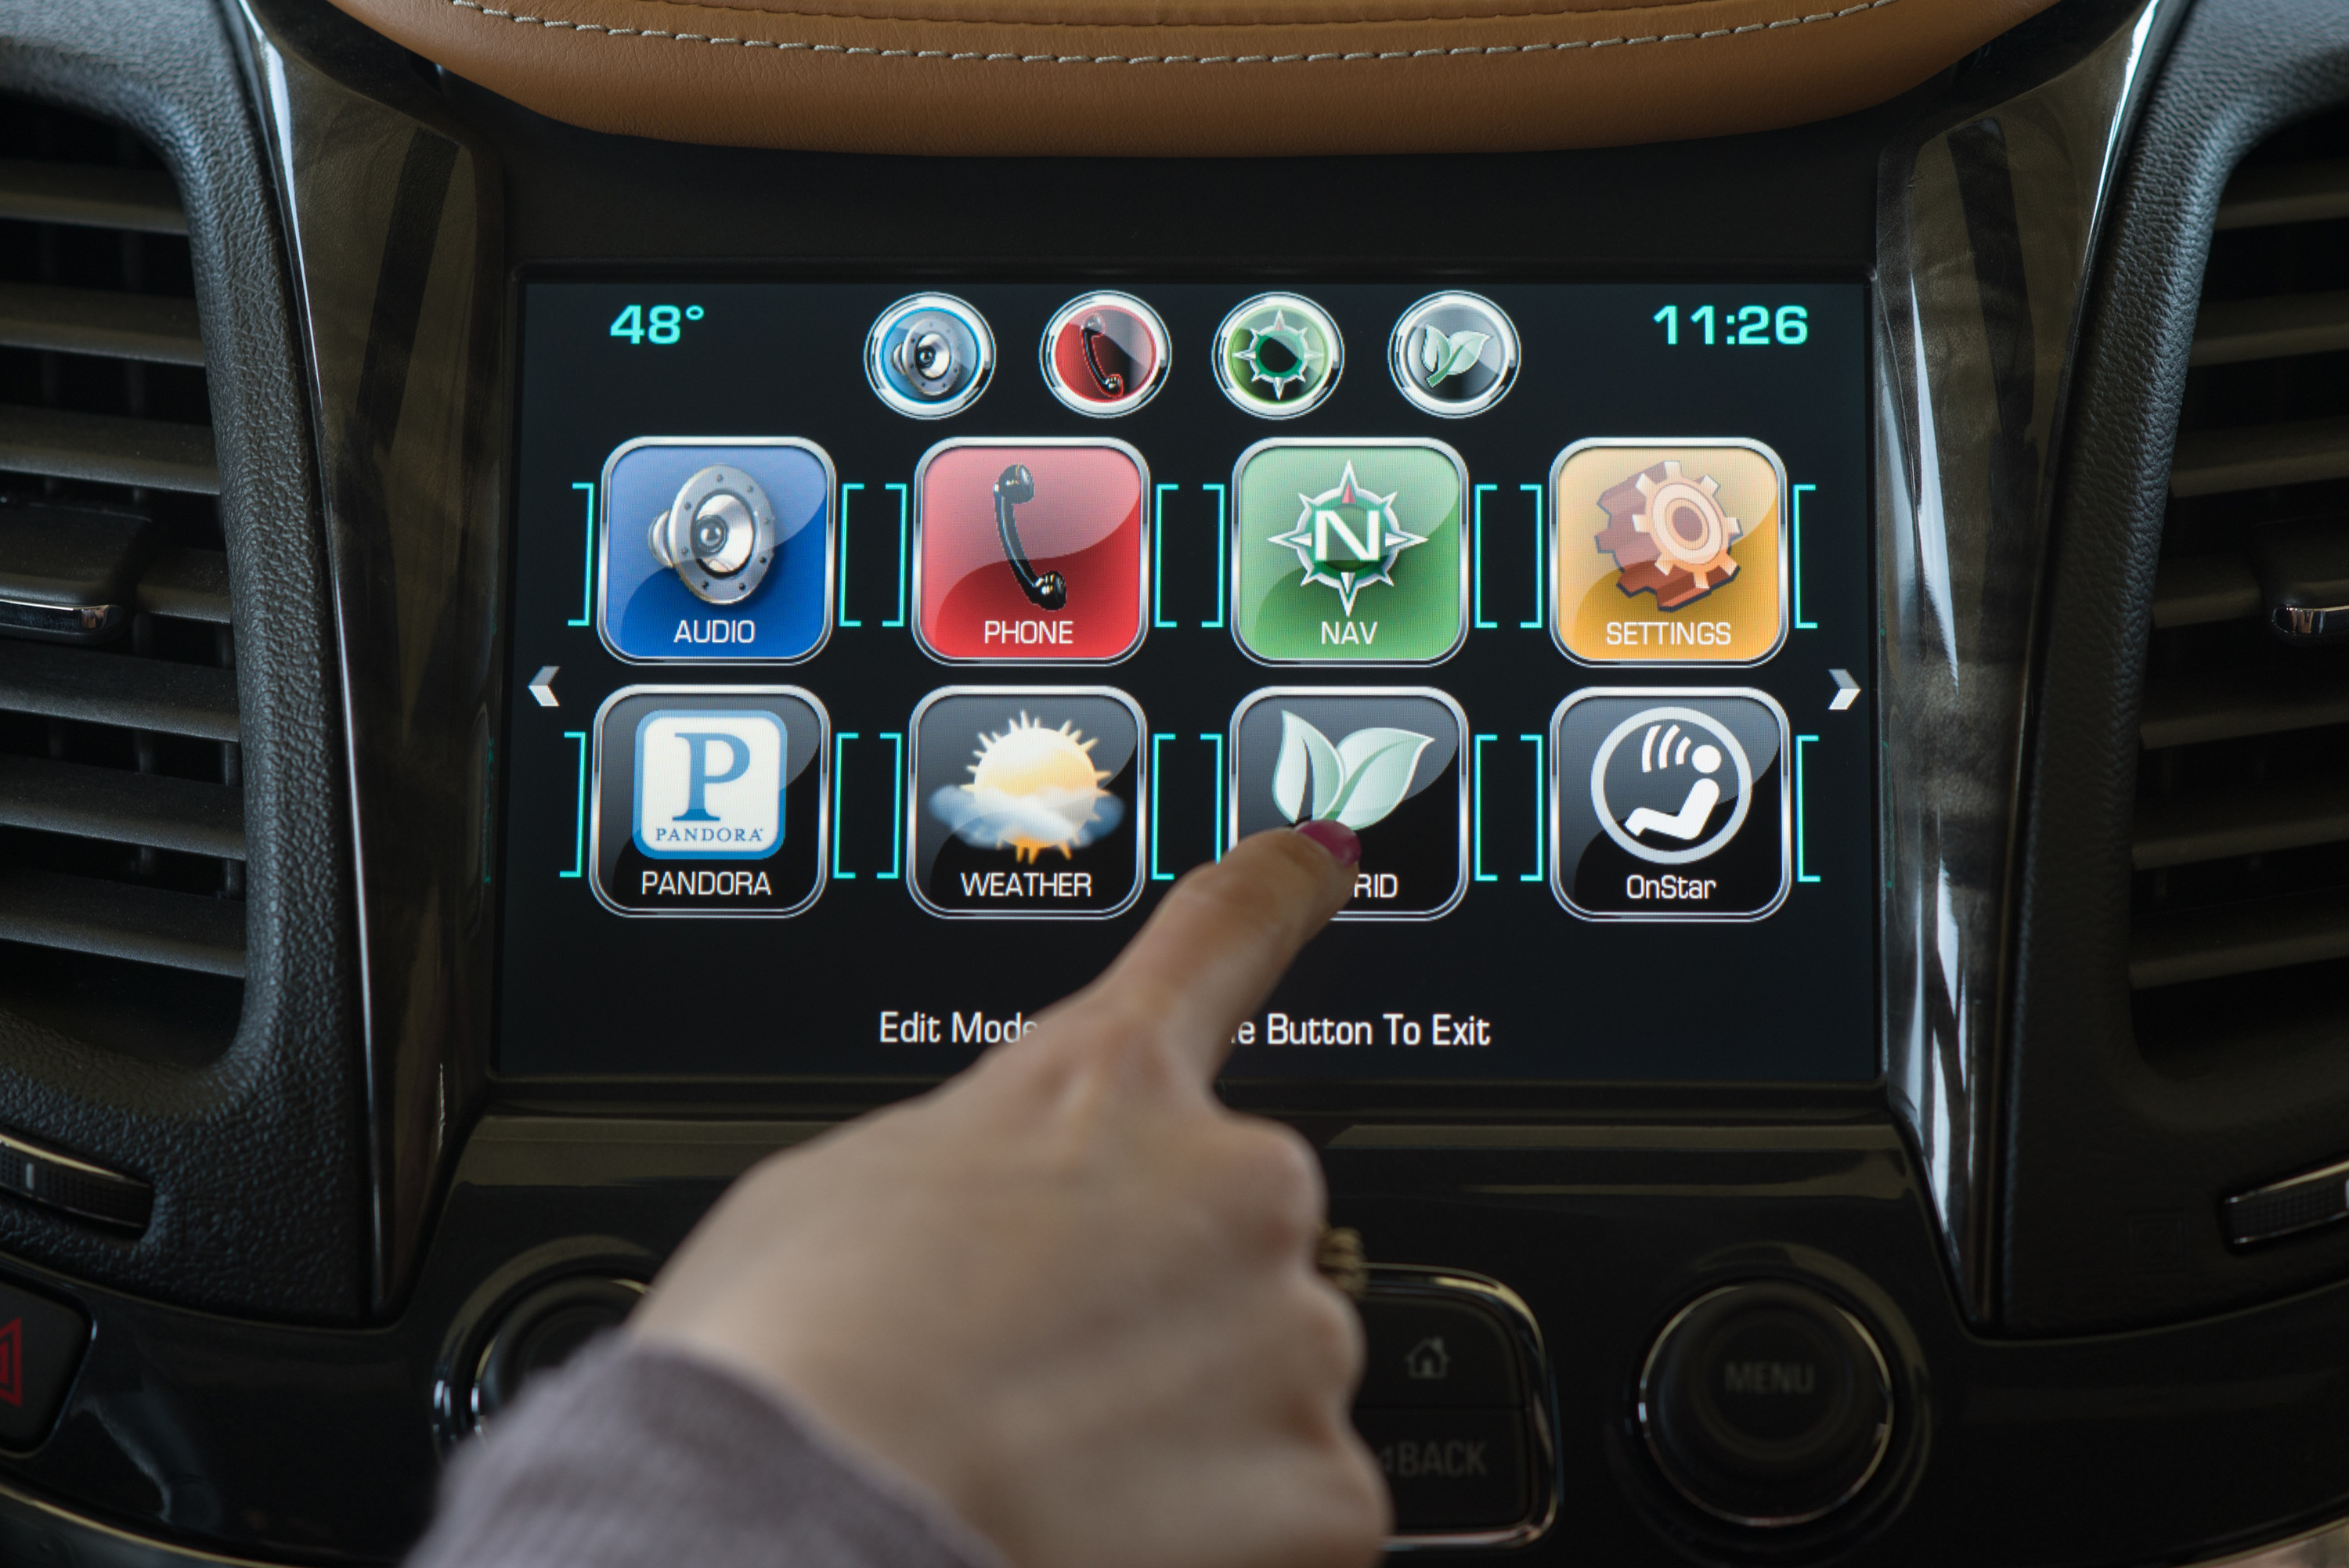 system auto chevy infotainment impala market automotive connected mylink systems technology distractions distracted cybersecurity driving cars unnecessary survey navigation raking